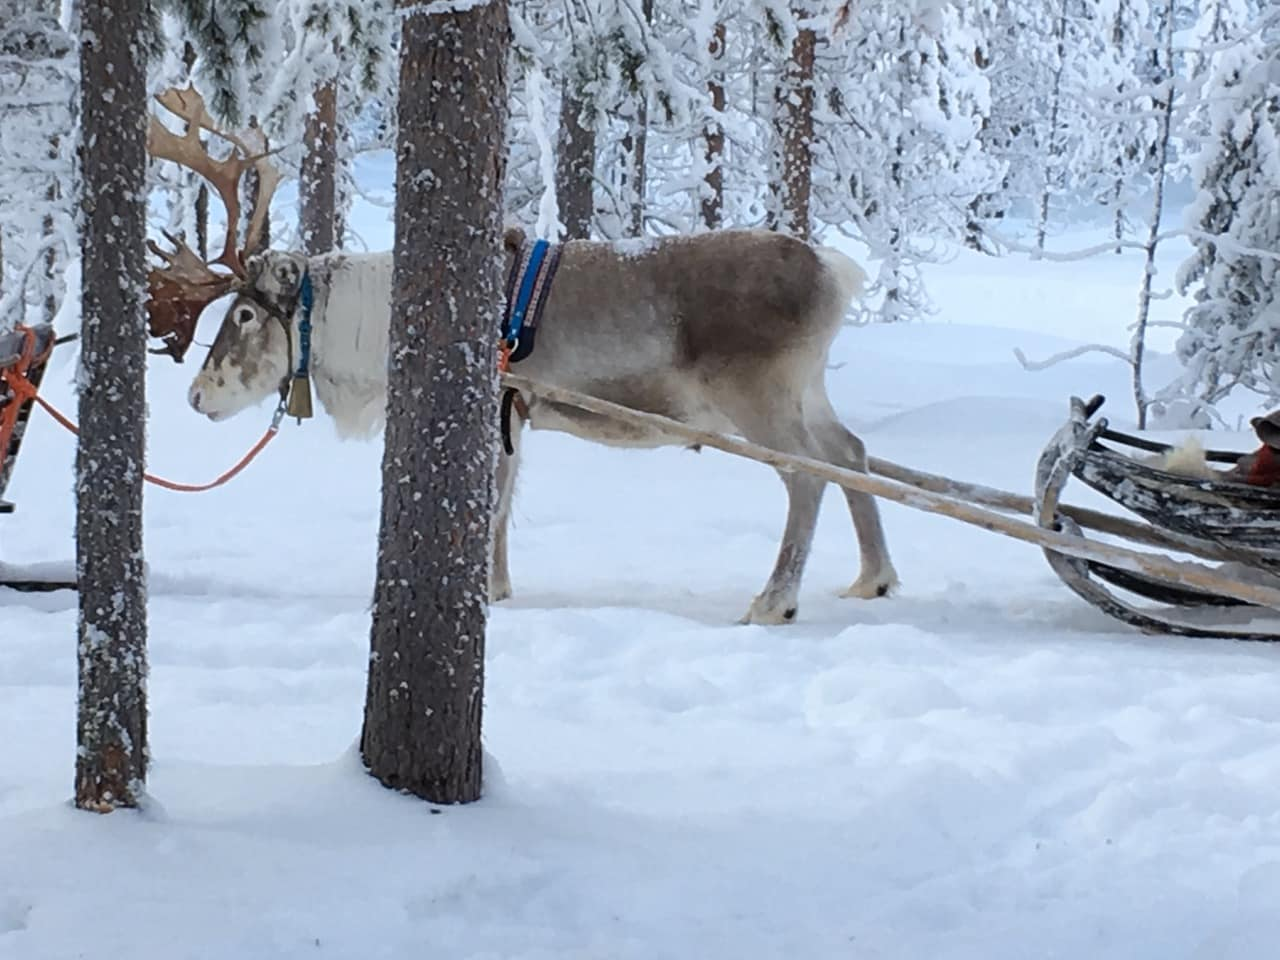 lapland-reindeer-waiting-outside-backcountry-hut